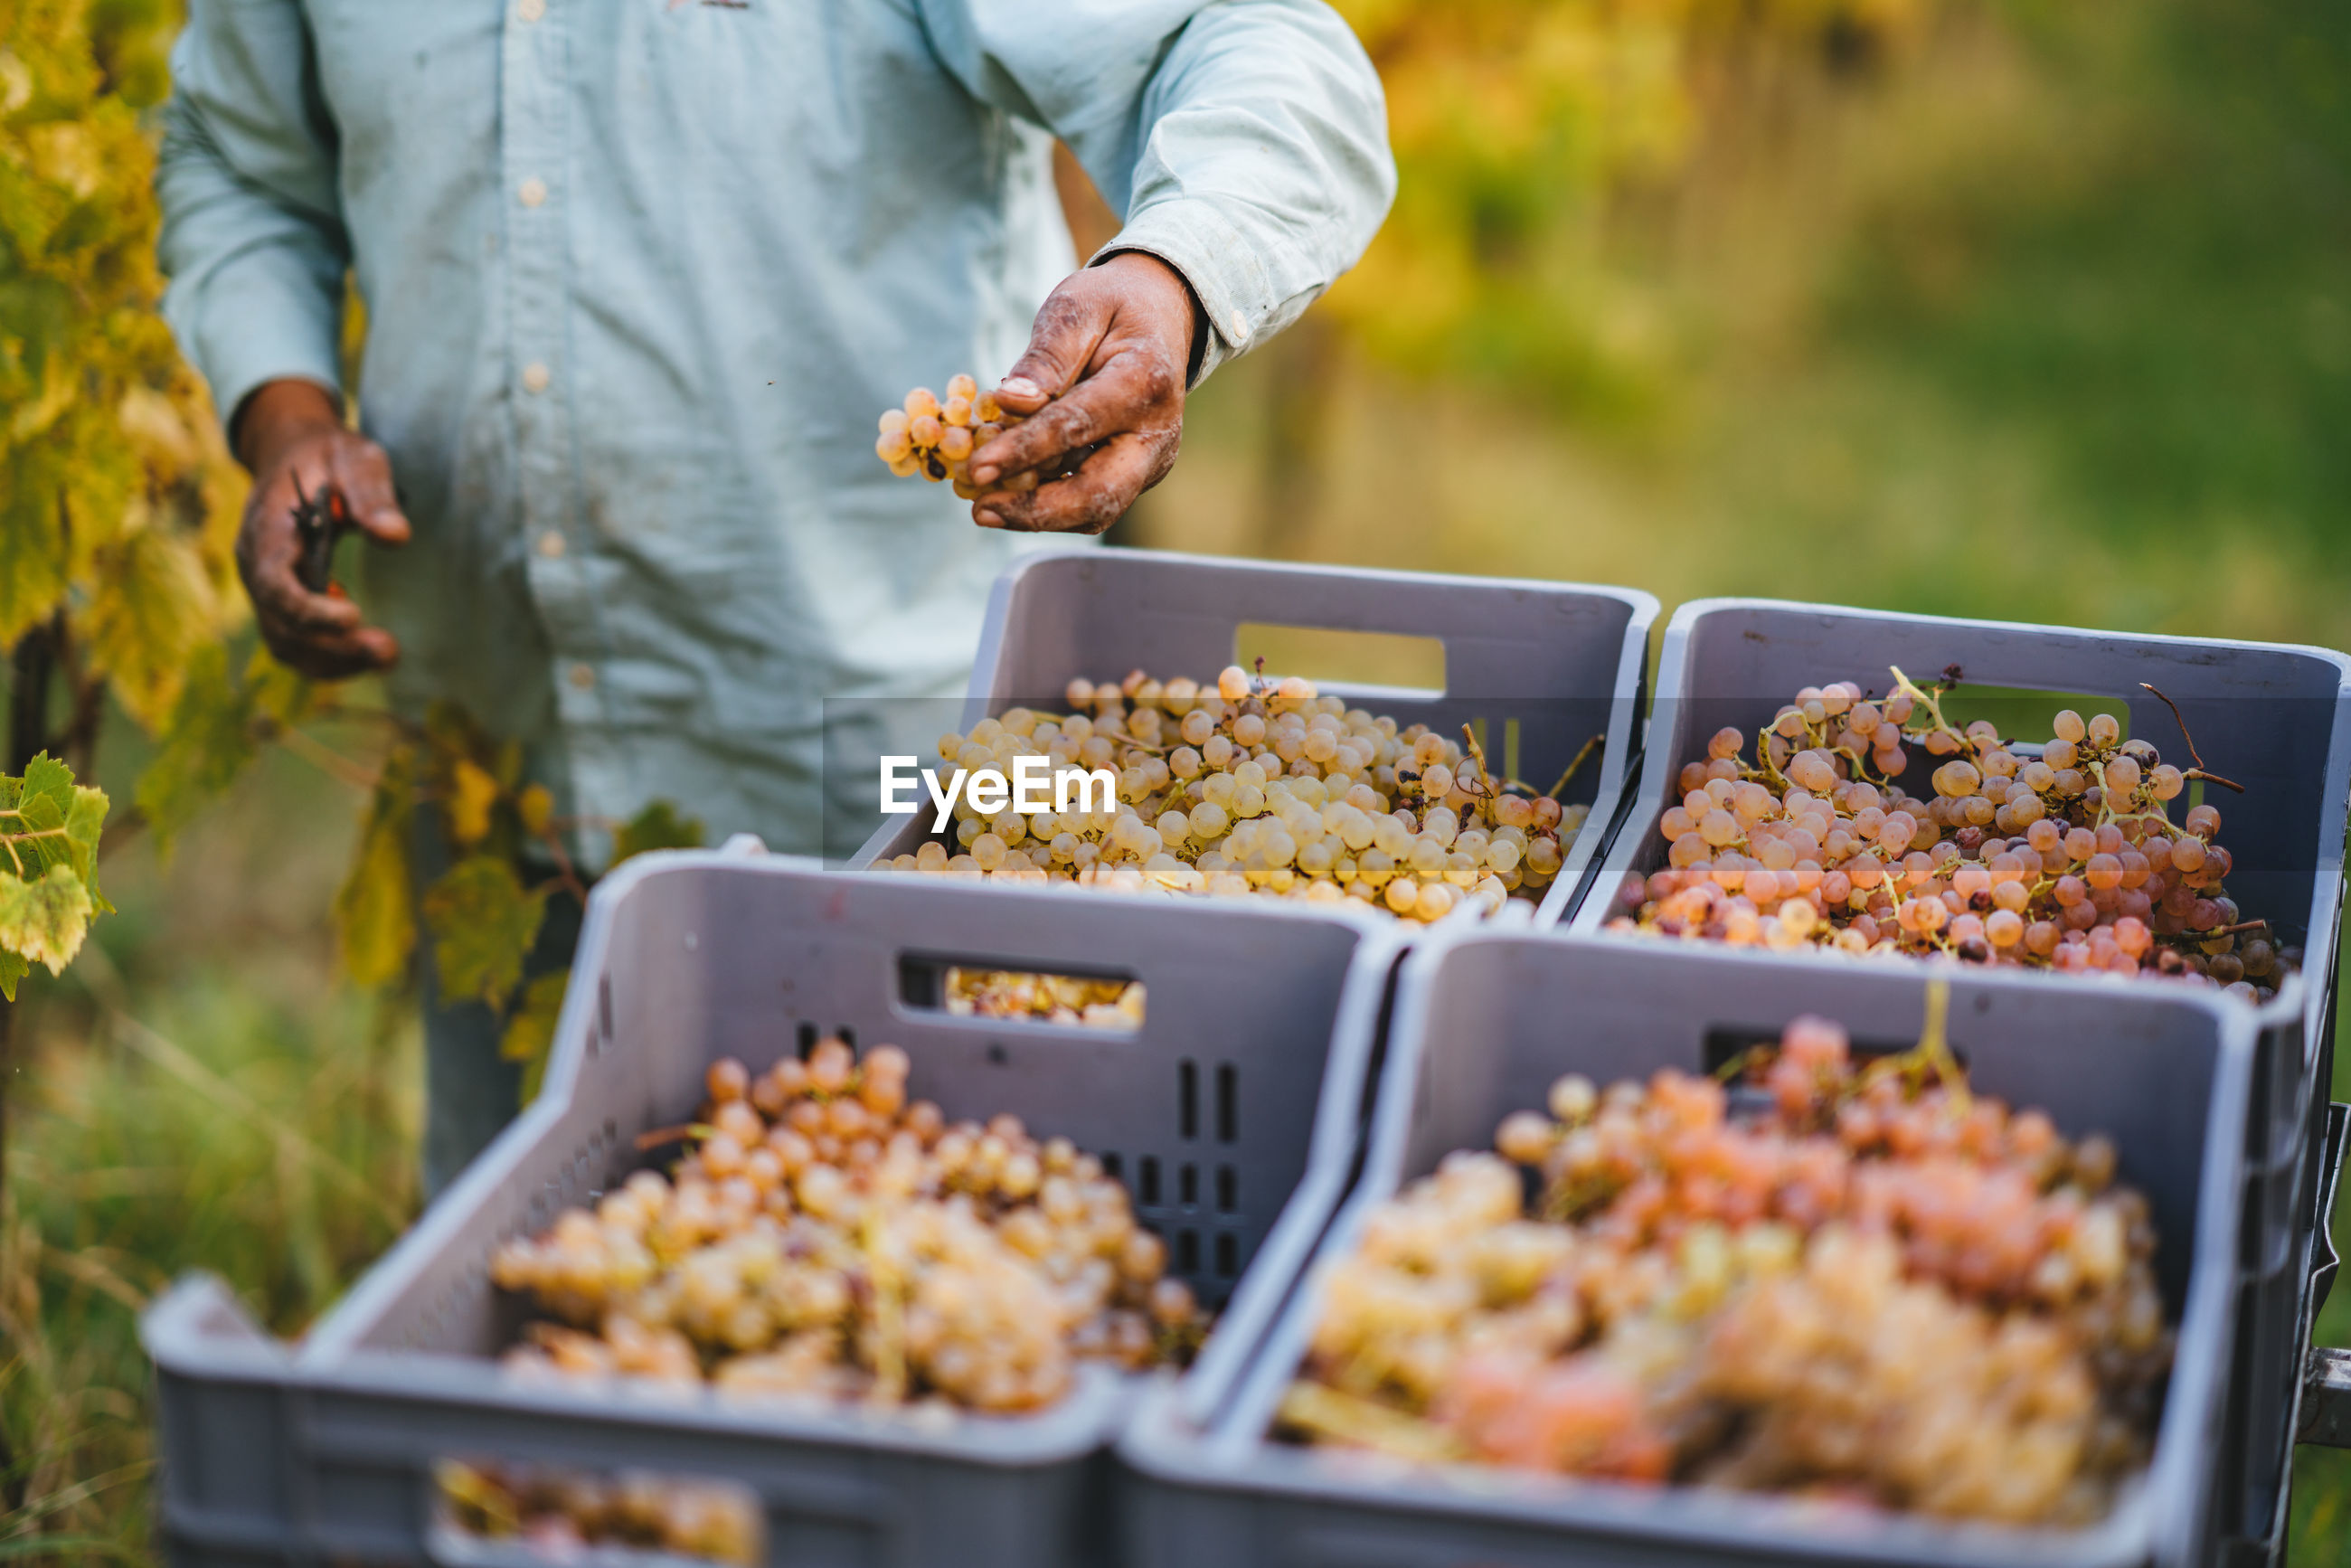 Midsection of male farmer harvesting grapes at vineyard